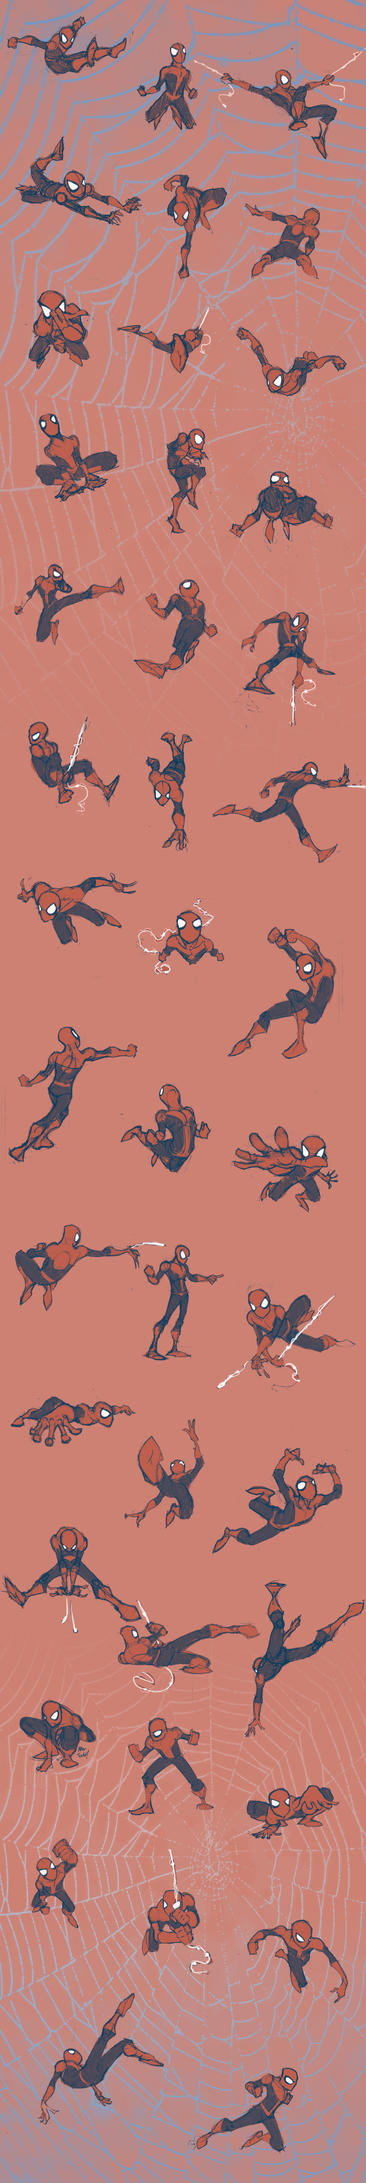 Spidermen... lots of Spidermen by AdamMasterman